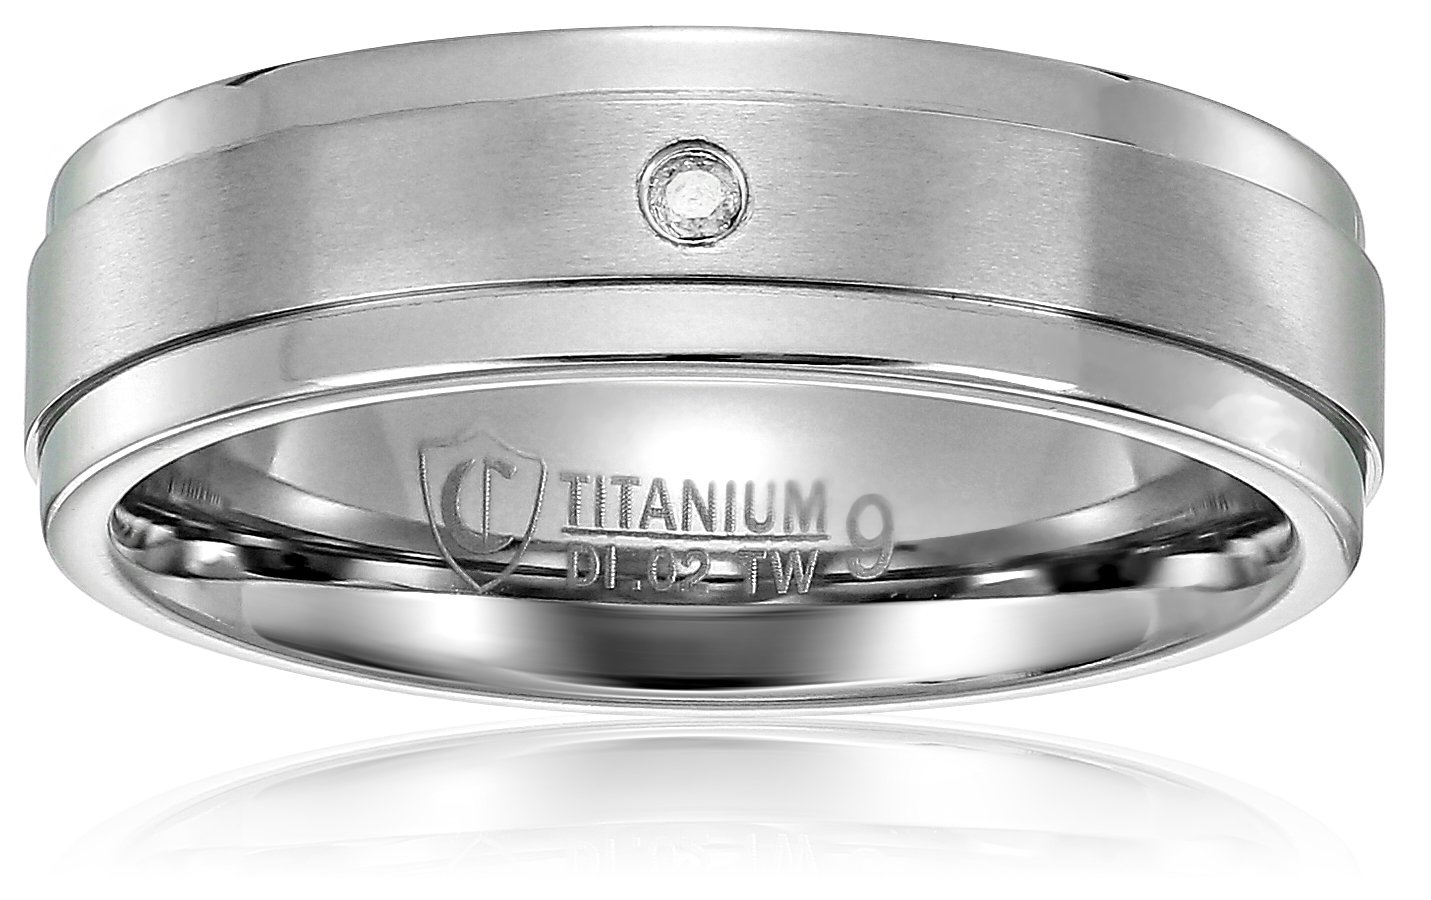 Crucible Jewelry Mens Titanium and 0.02 CTW Diamond Dual Finished Comfort Fit Wedding Band (H-I, SI2), Size 9, White